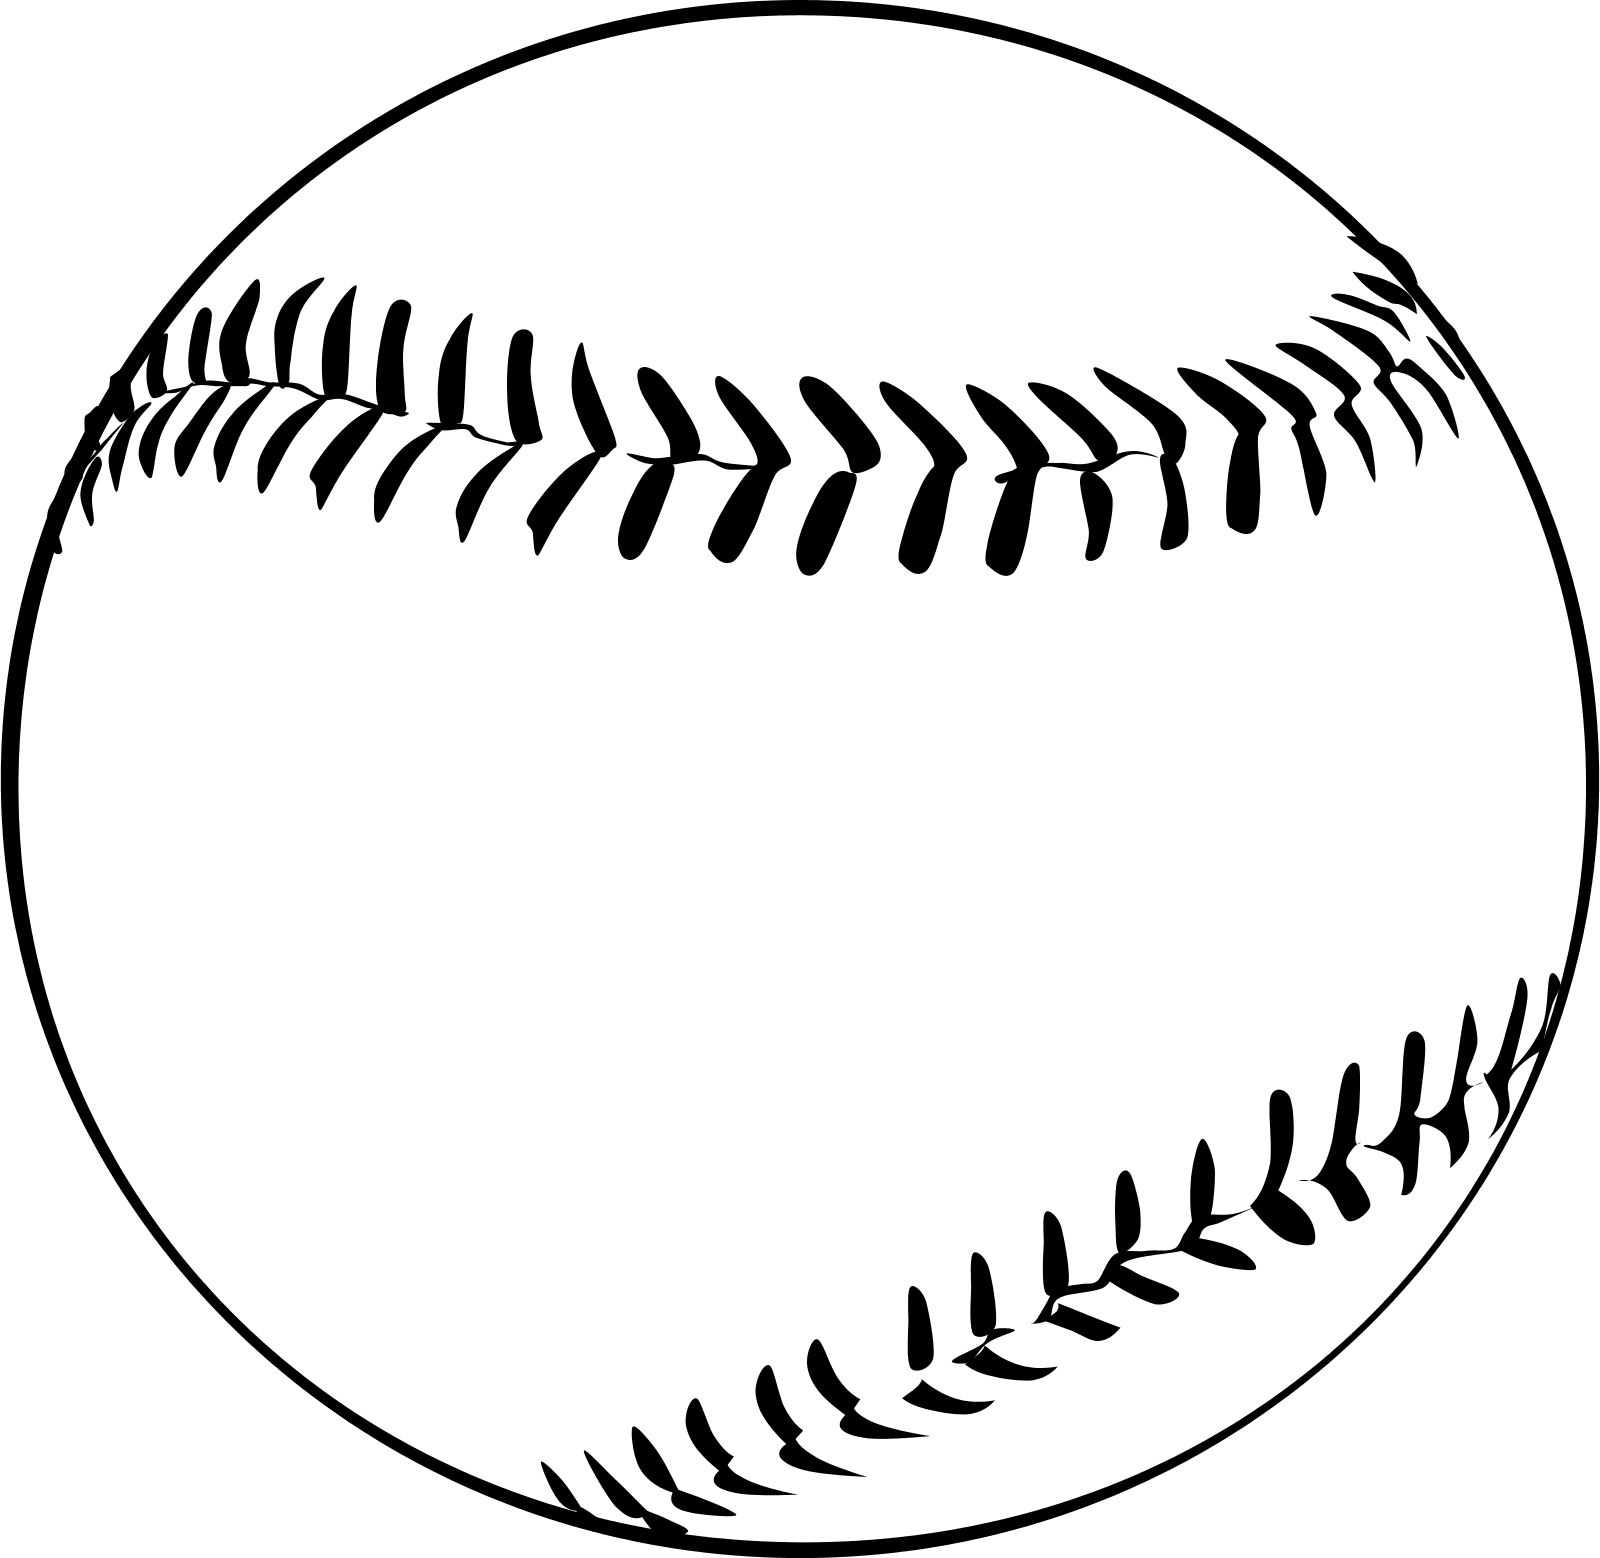 Softball clip art png. Collection of clipart